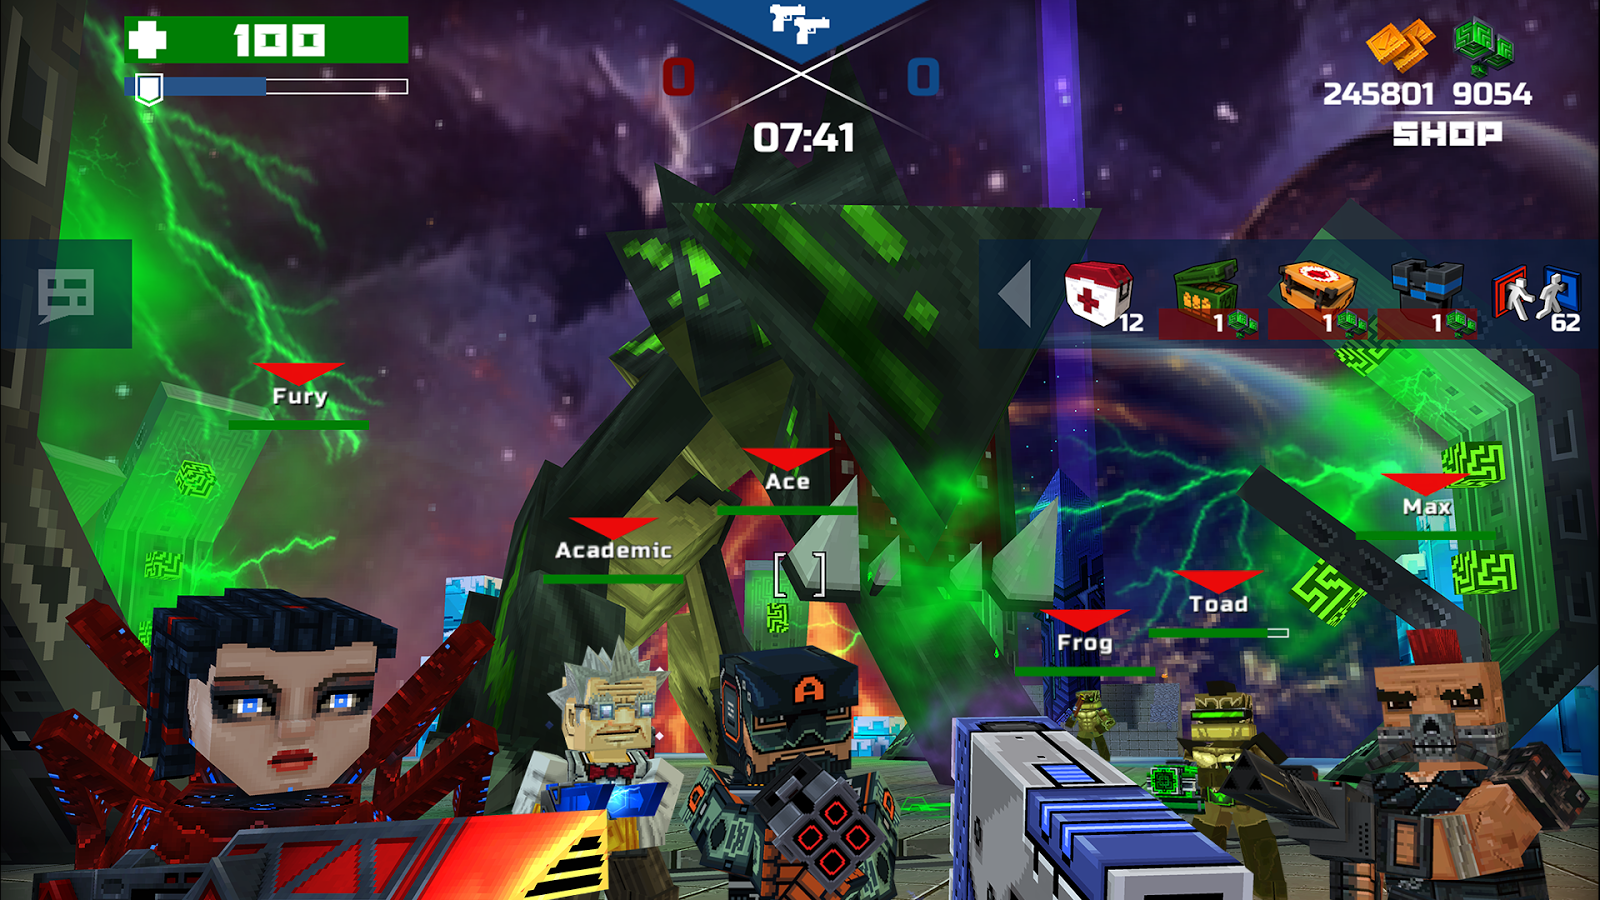 Pixelfield - Best FPS MOBA Strategy Game Screenshot 8